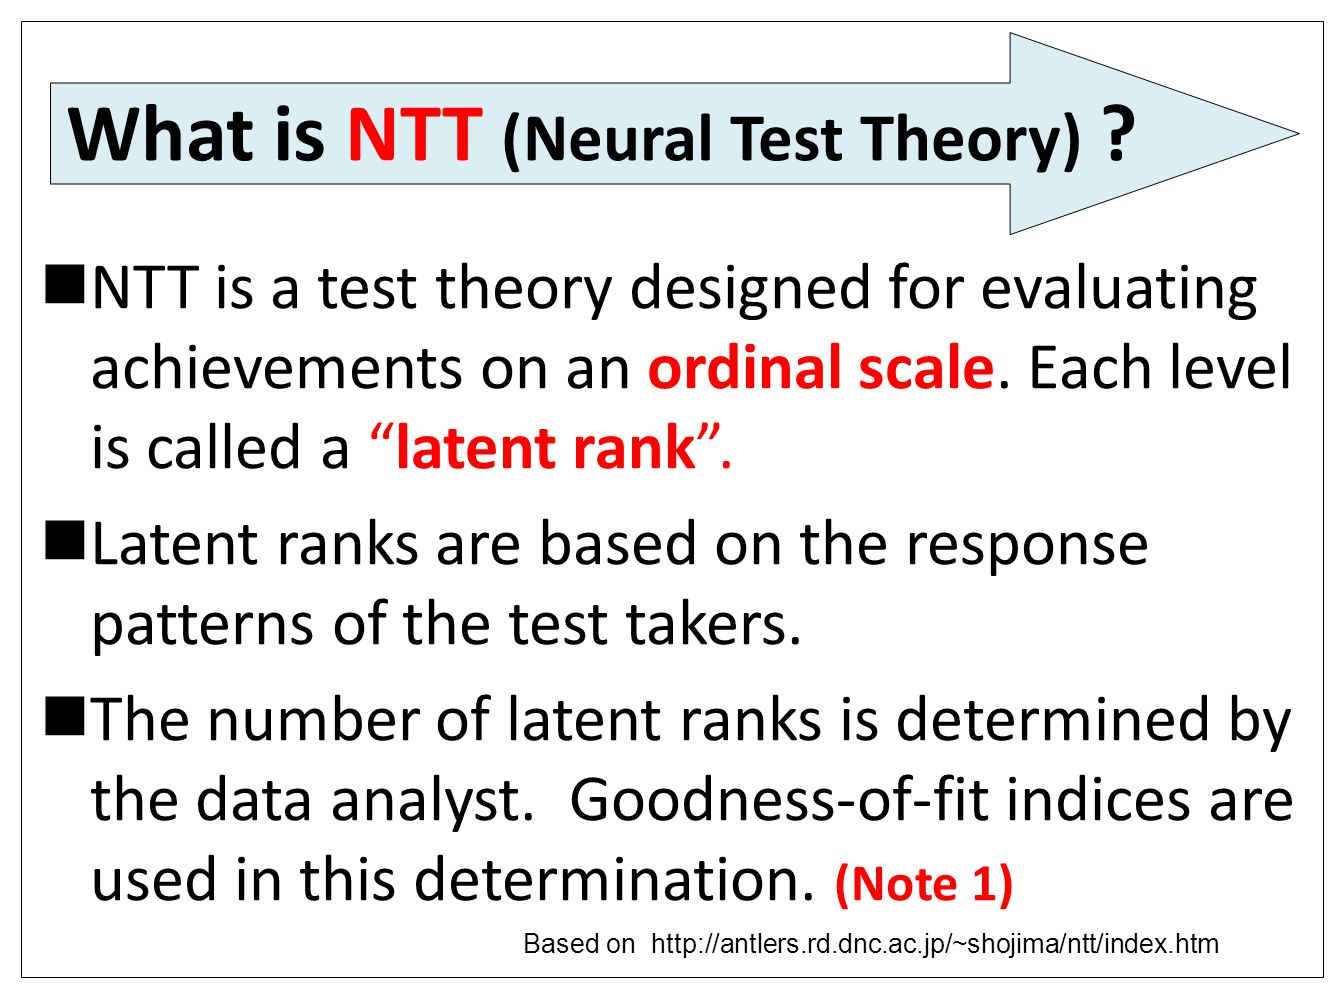 NTT is a test theory designed for evaluating achievements on an ordinal scale.